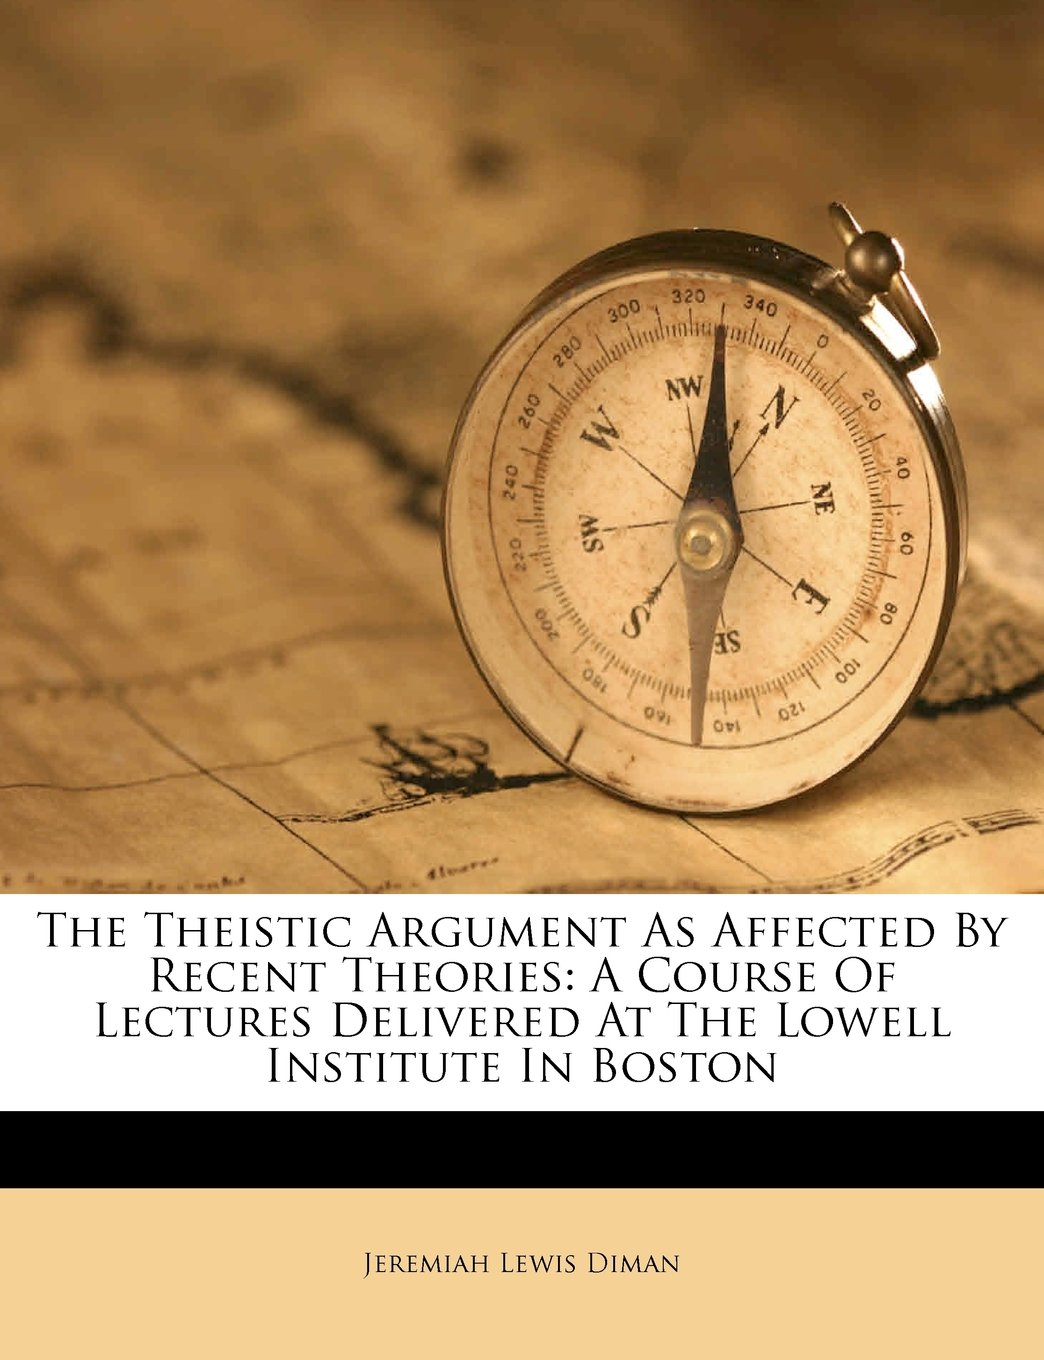 Read Online The Theistic Argument As Affected By Recent Theories: A Course Of Lectures Delivered At The Lowell Institute In Boston pdf